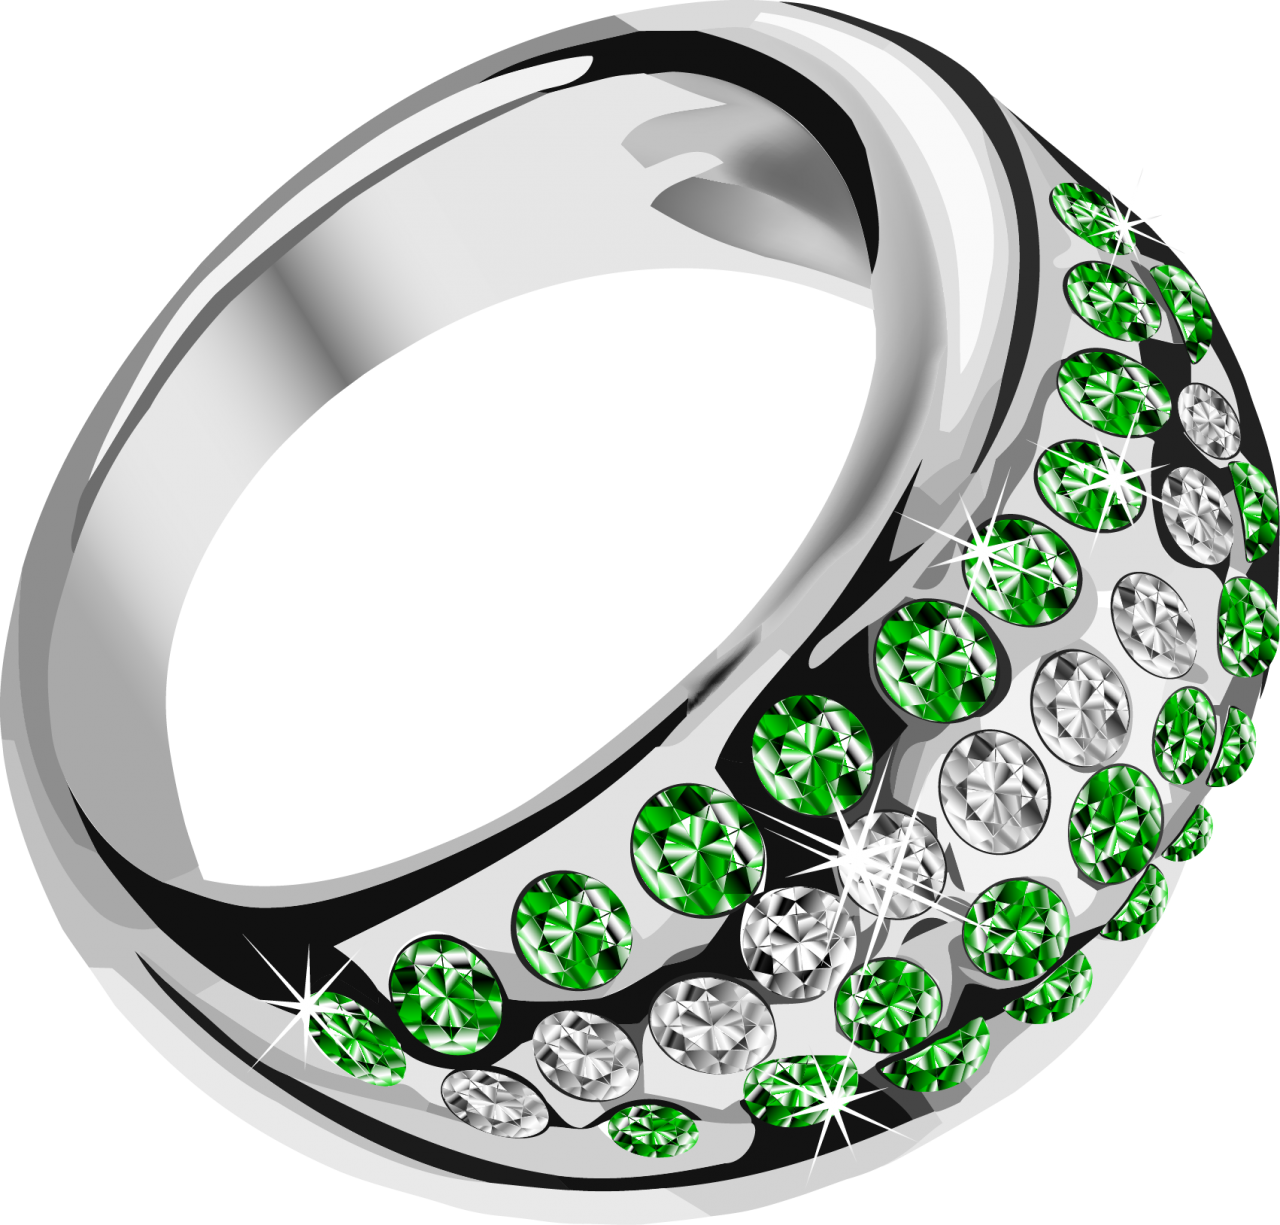 Beautiful Rings with Green Diamonds PNG Image